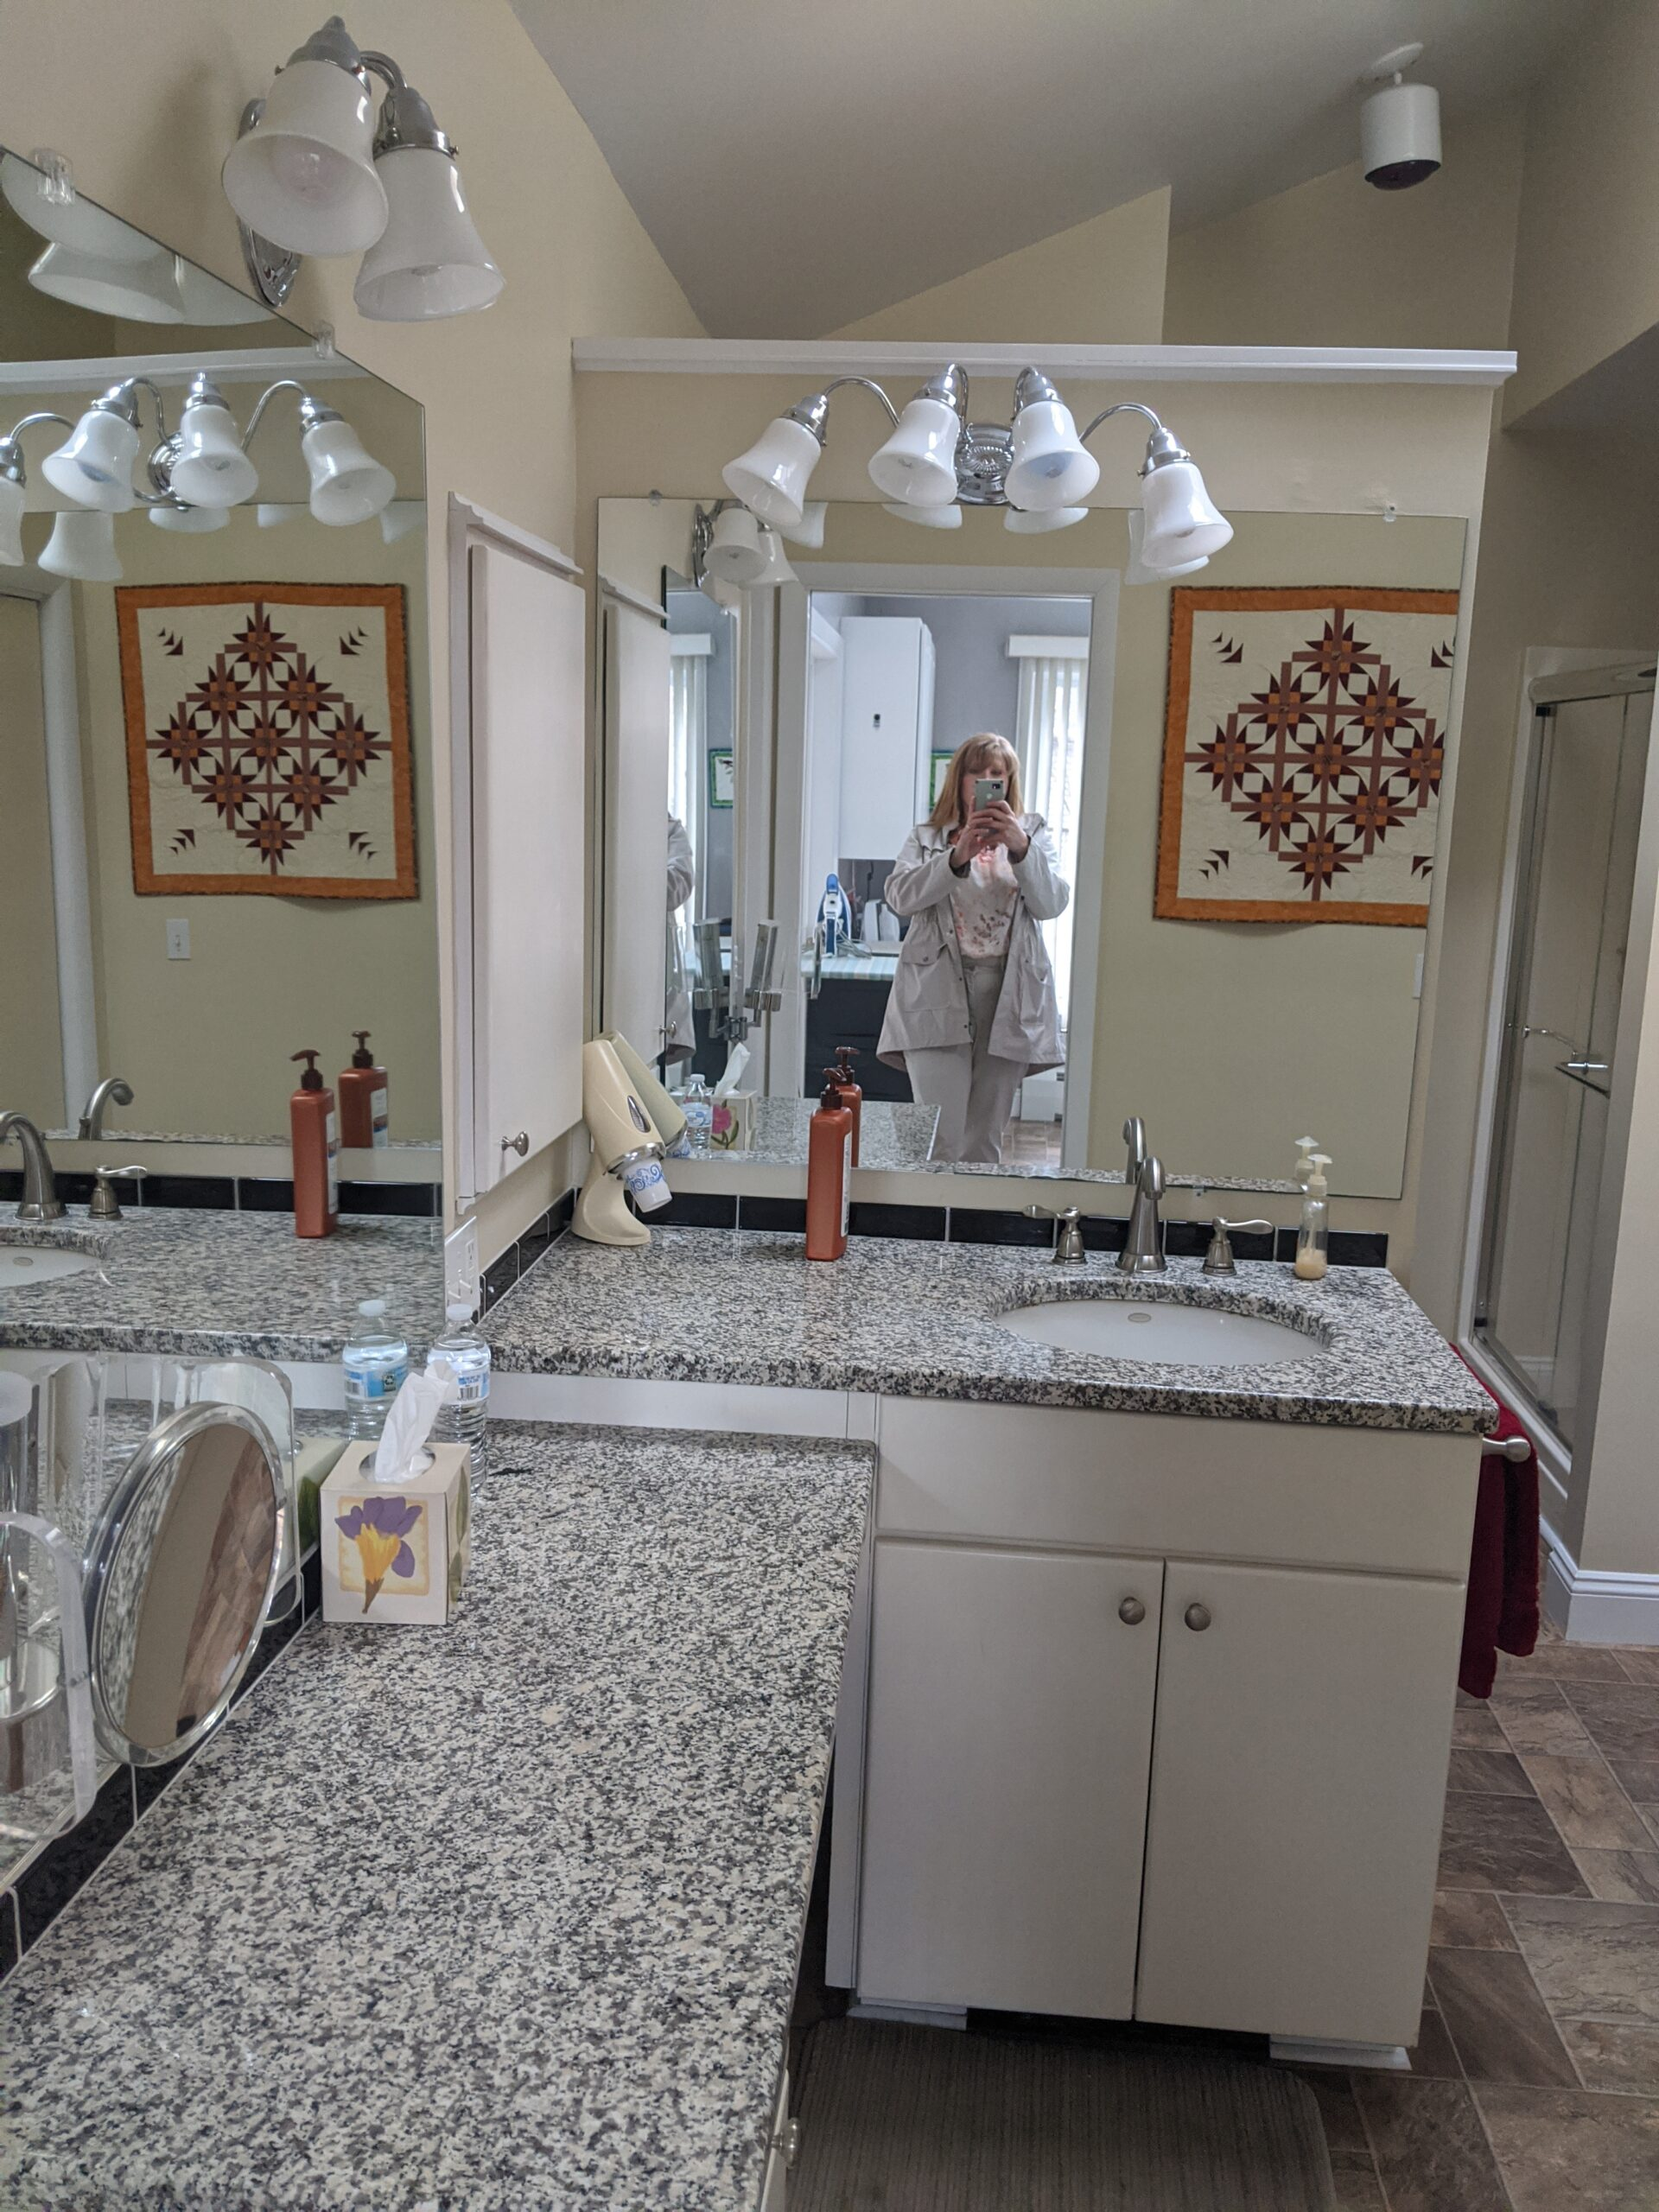 This picture is another angle showing the back to back vanities and how they stuck into the middle of the room.  The fall wall blocked natural light too